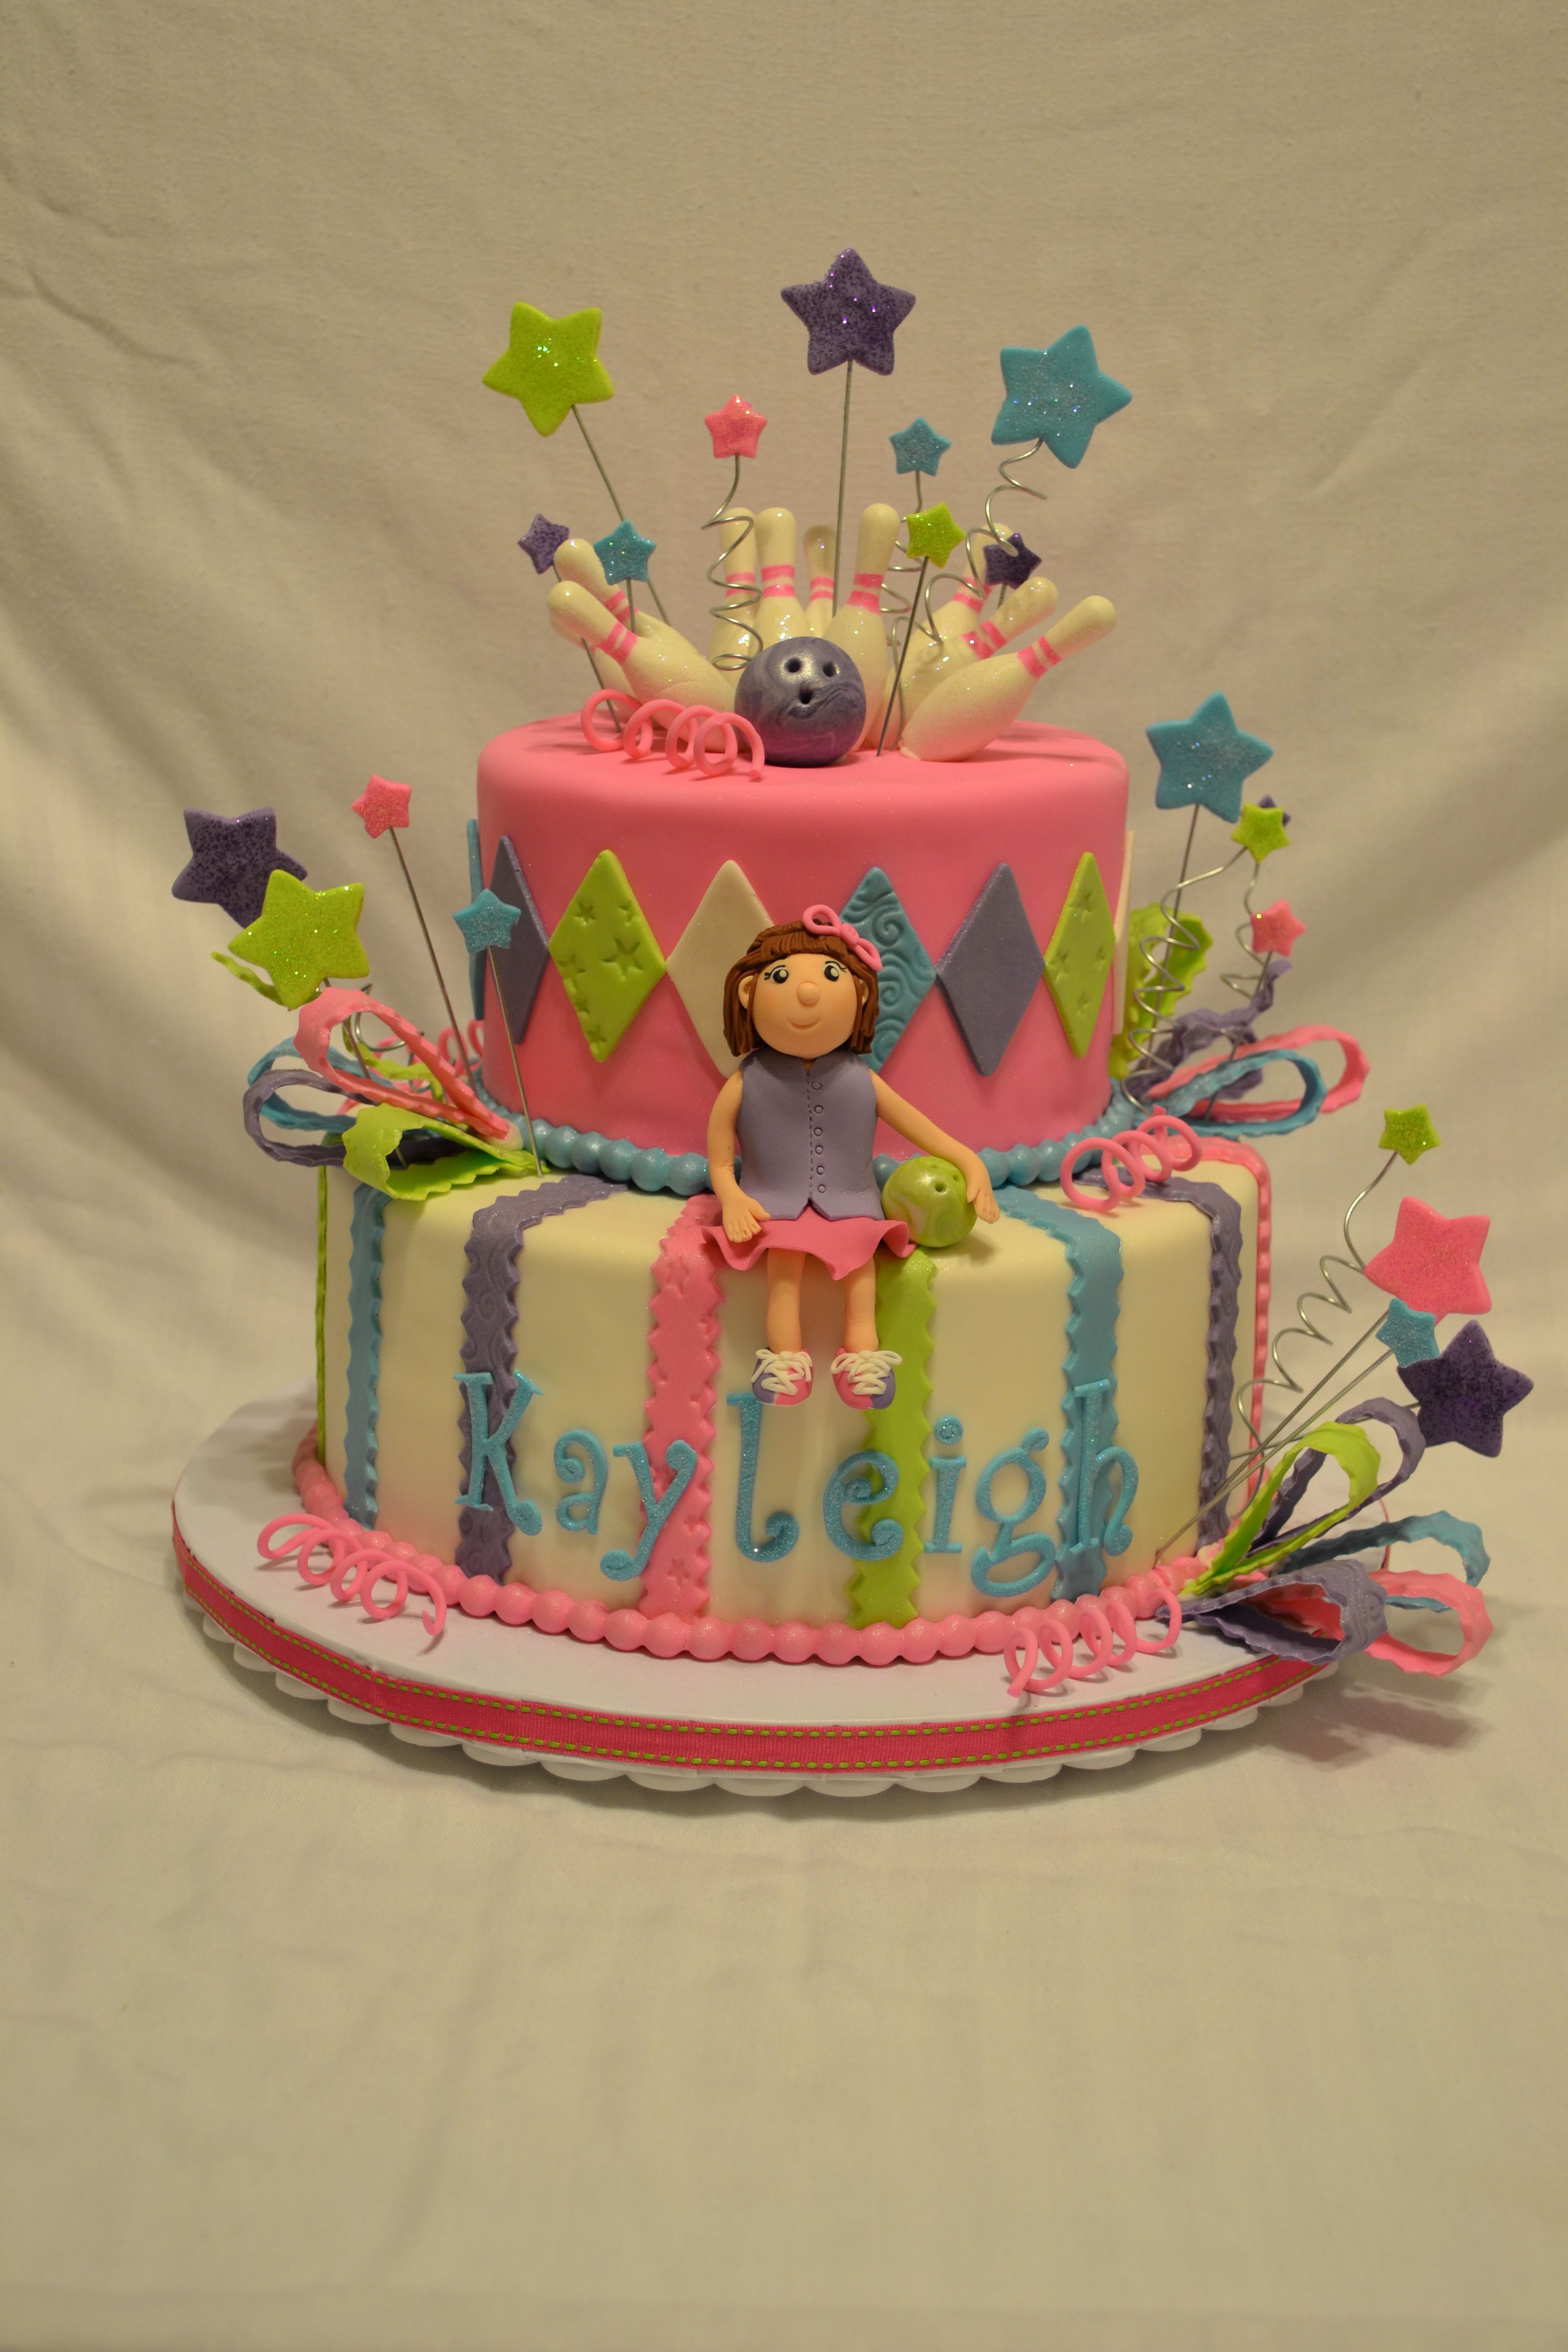 Bowling Cakes For Girls Bowling Birthday Party Cake Childrens